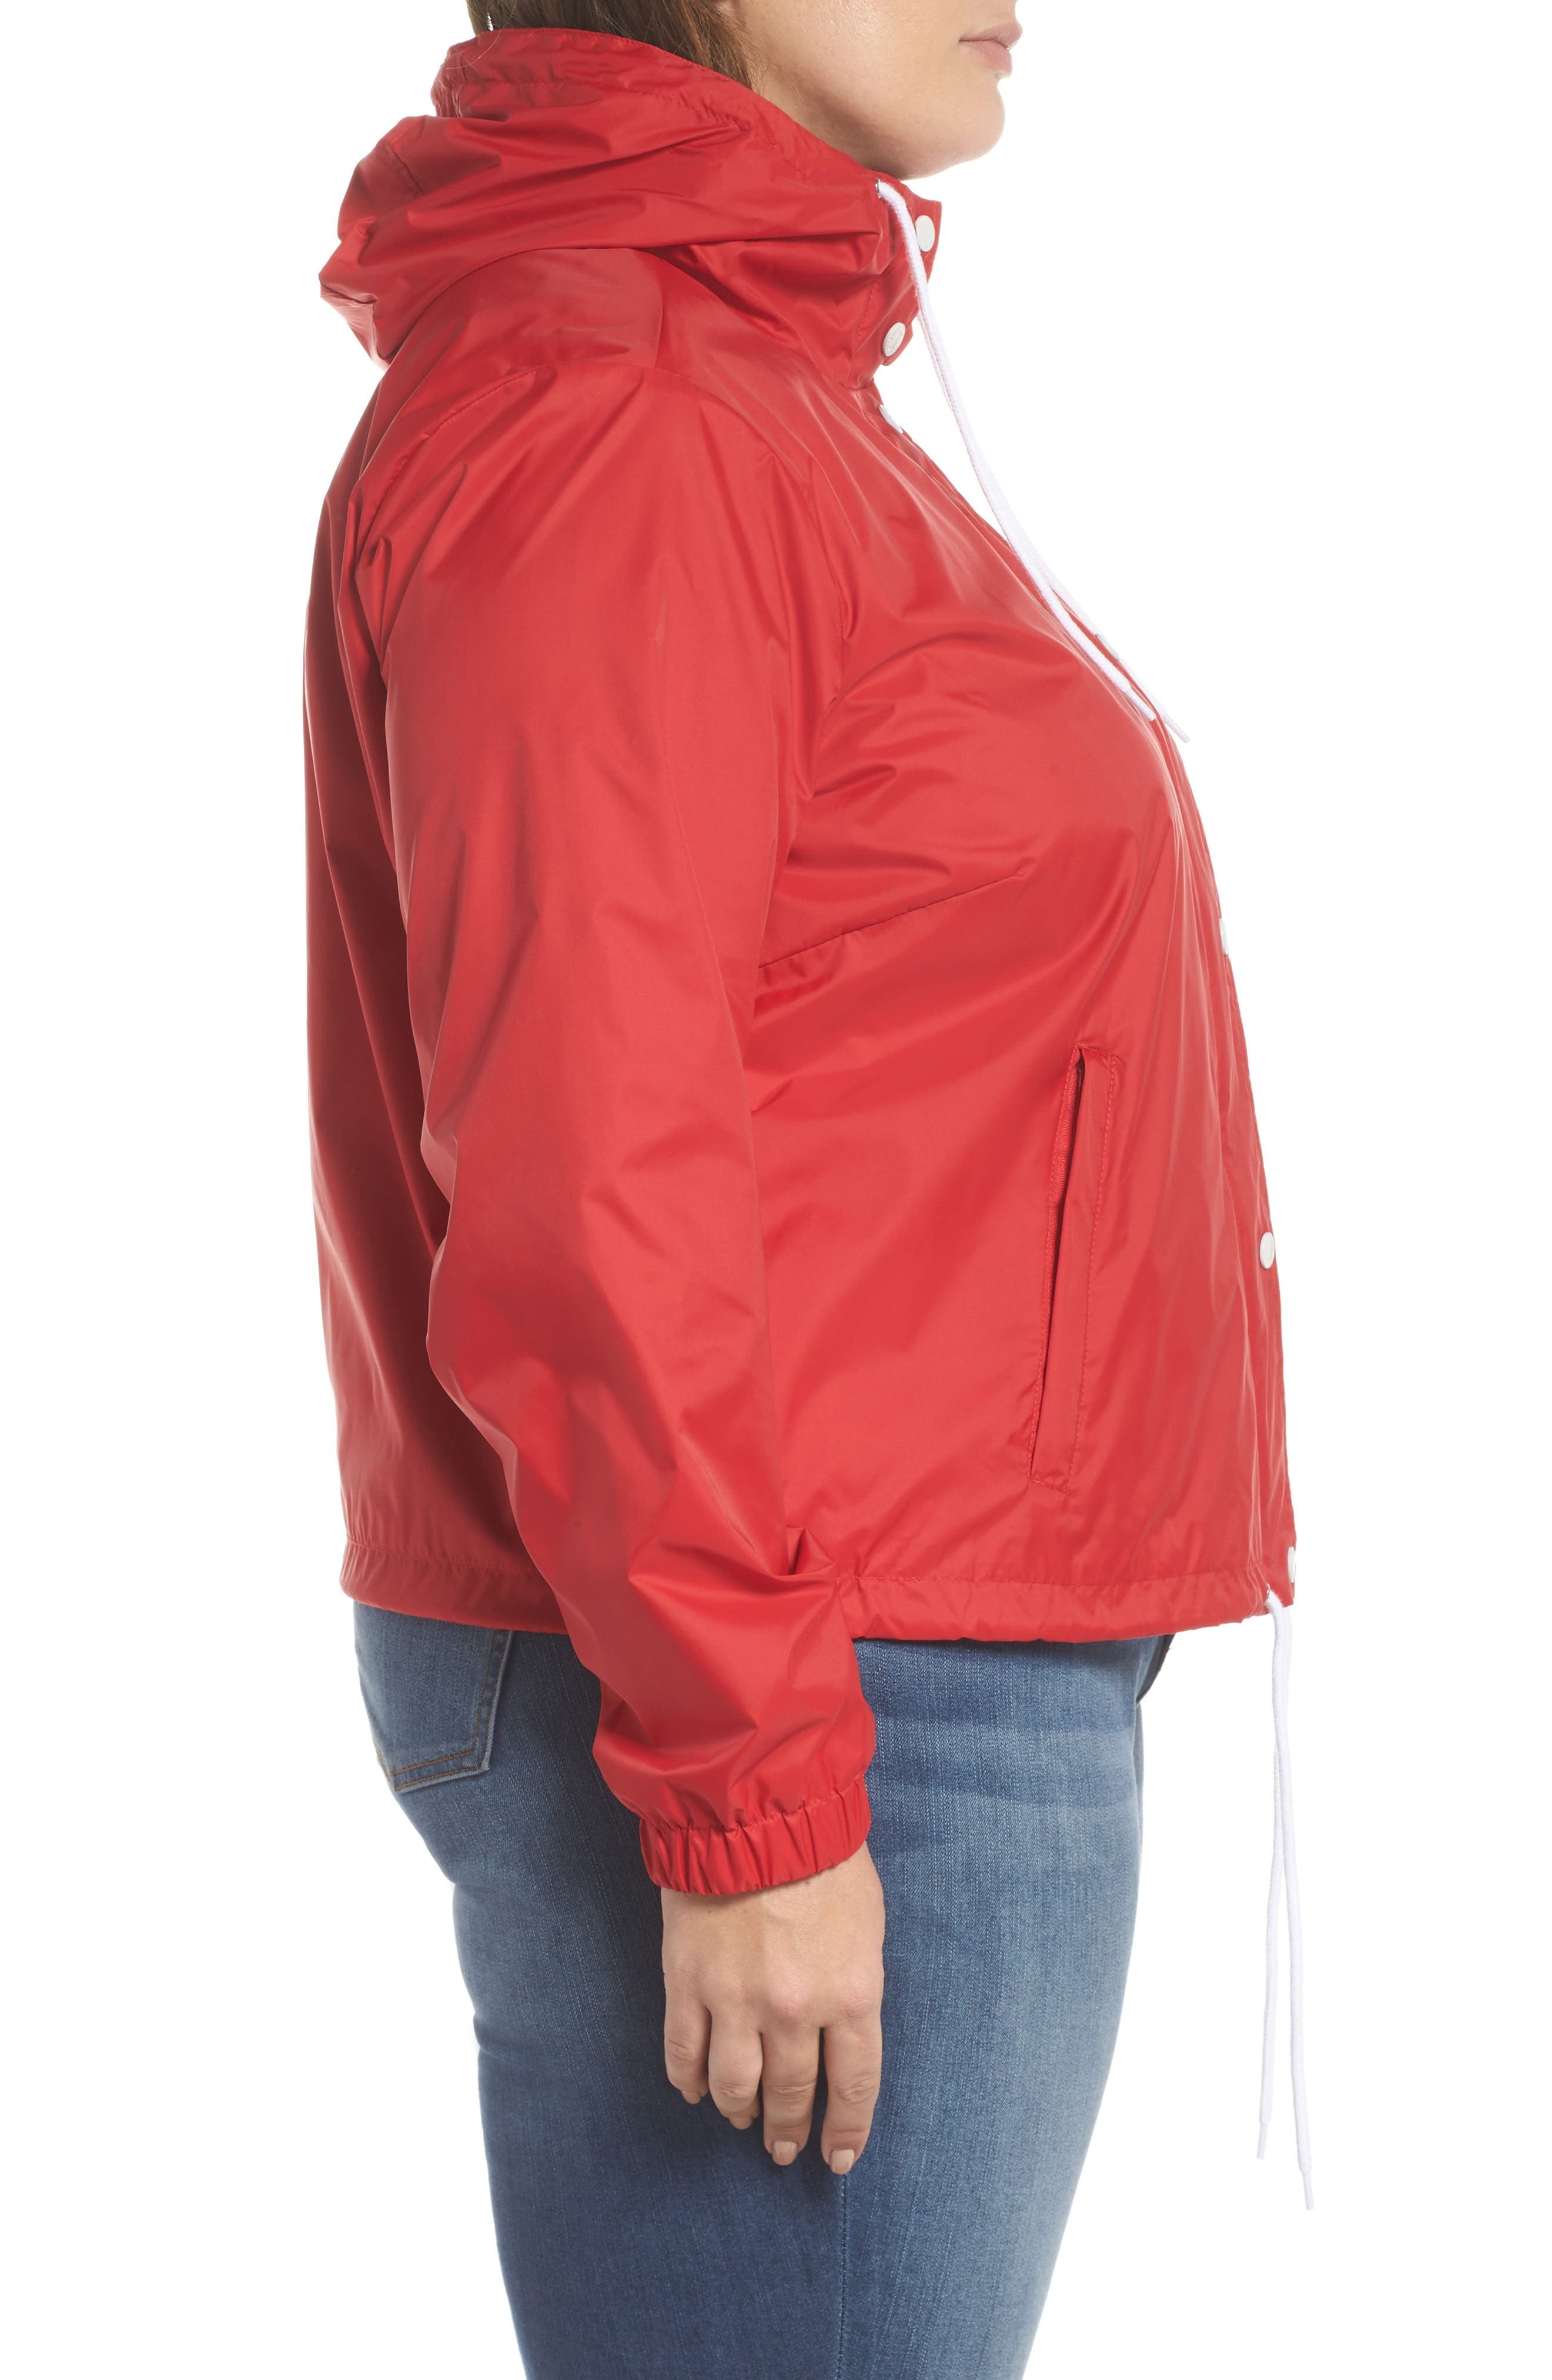 Retro Hooded Coach's Jacket,                             Alternate thumbnail 3, color,                             Red